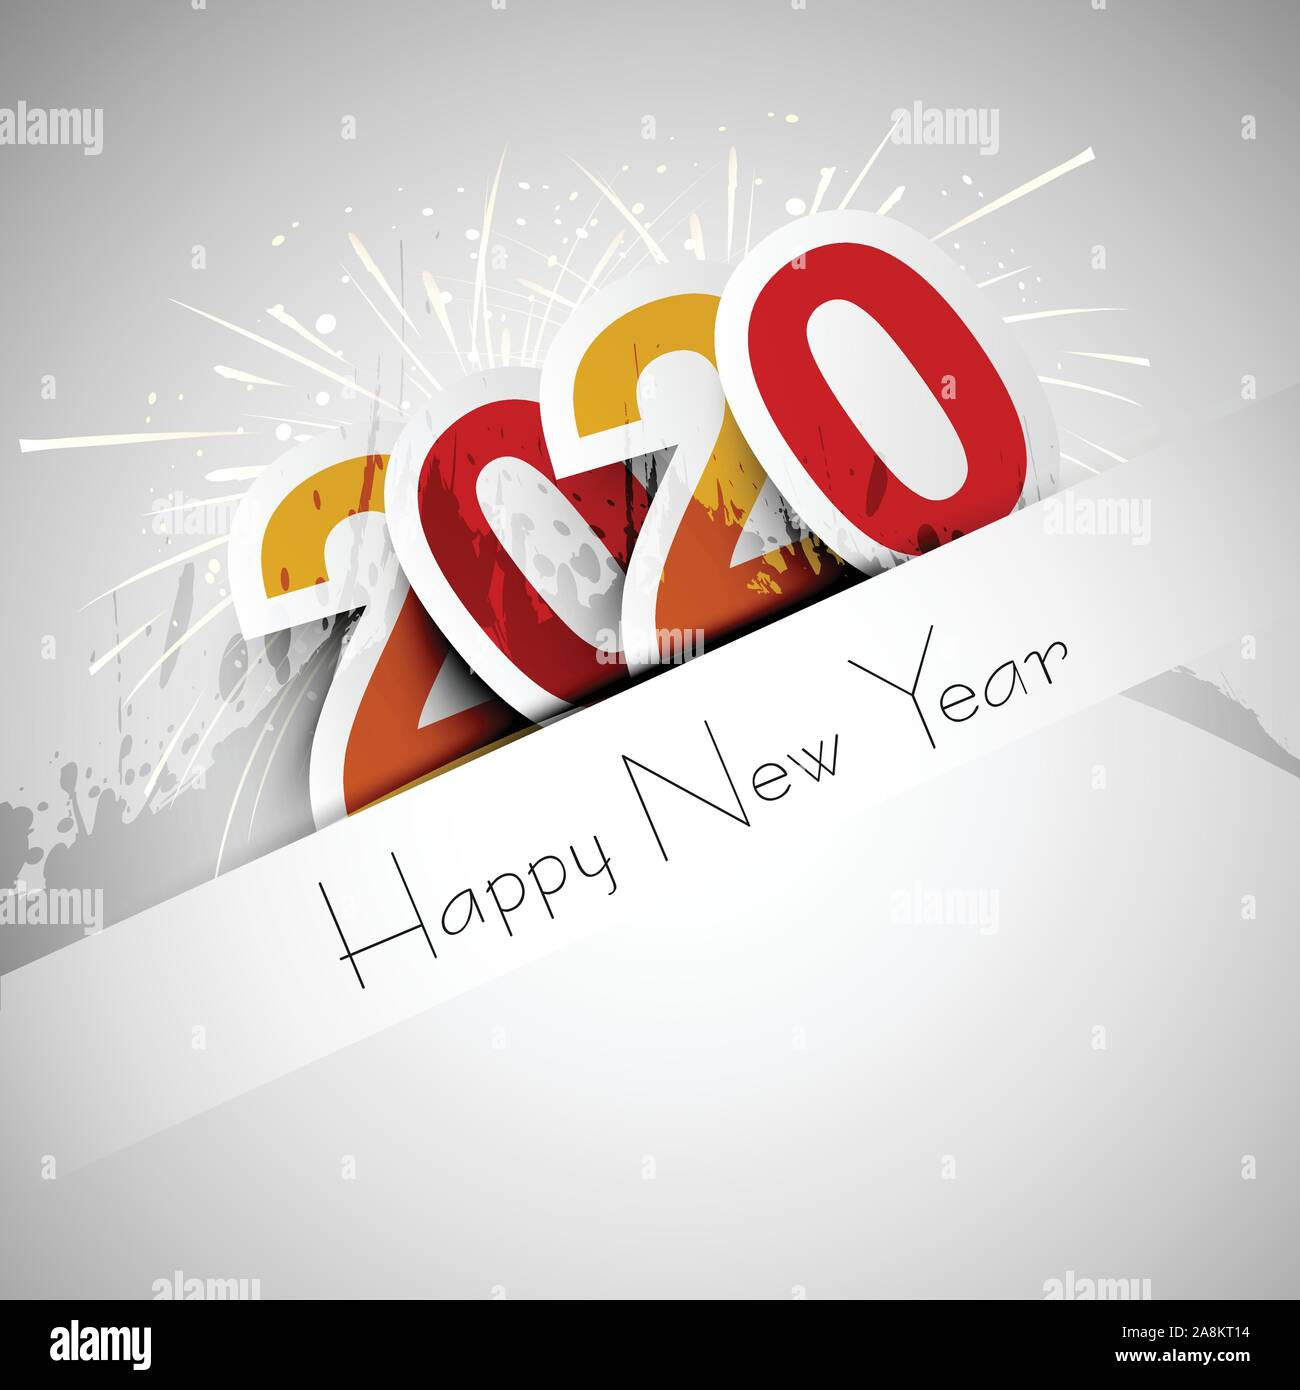 Happy New Year 2020, 2020 wishes, Happy New Year 2020, Celebrating 2020, calendar, Vector illustration Stock Vector